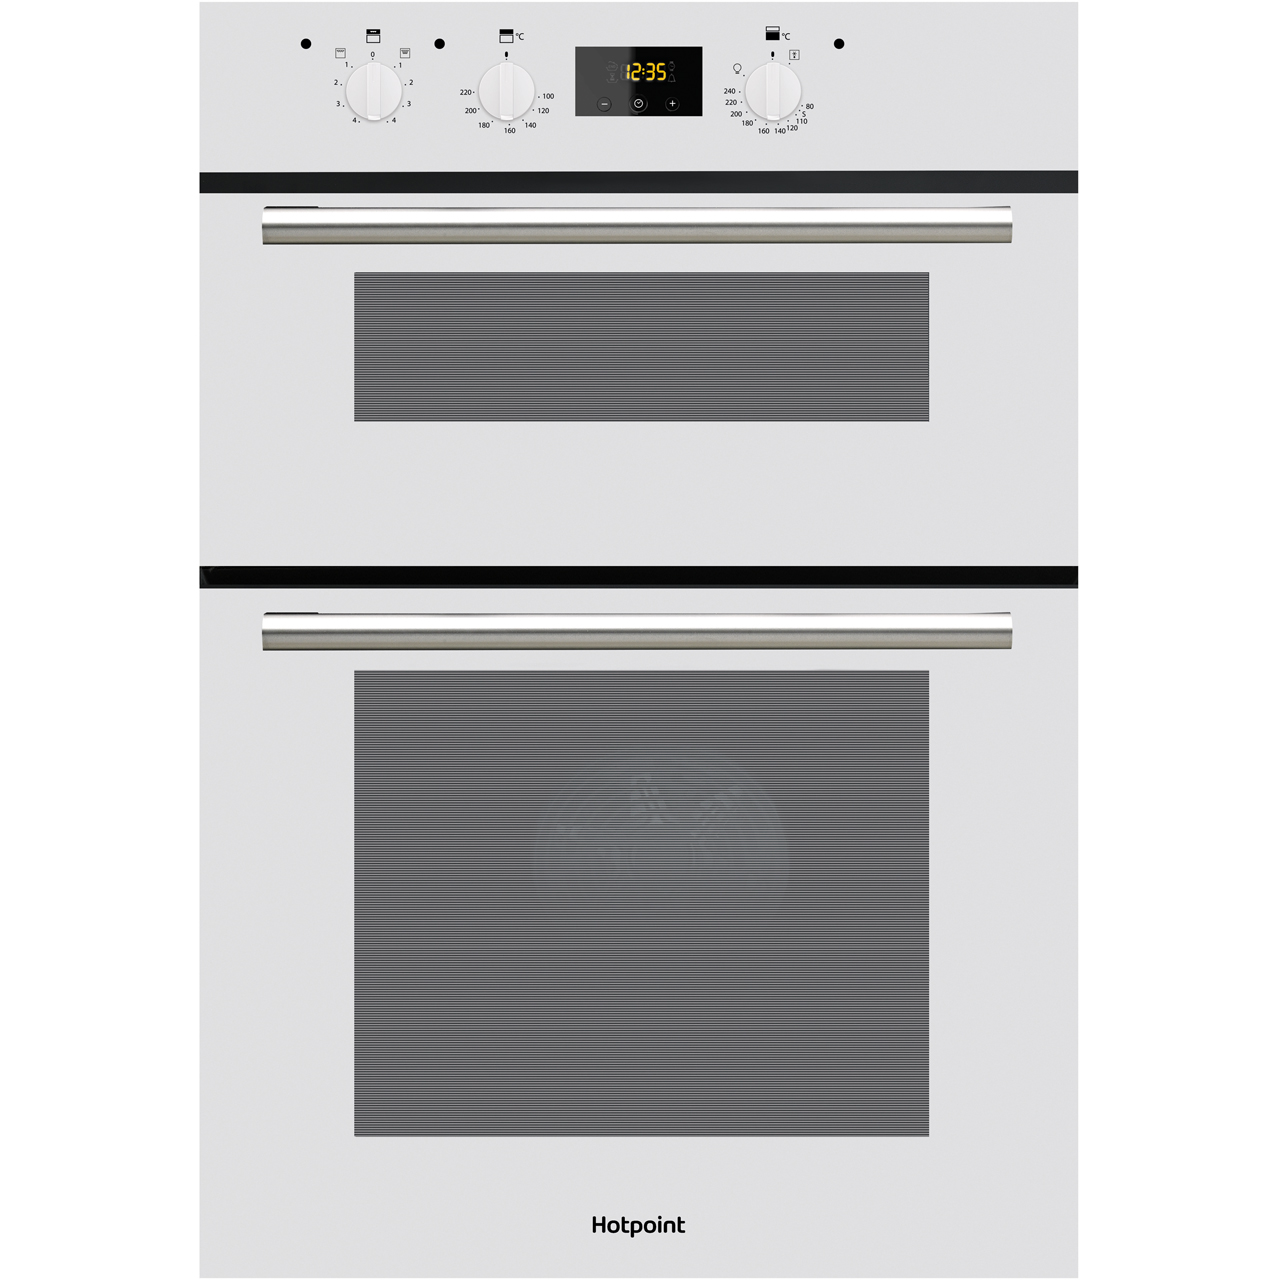 Hotpoint Oven Heating Element Replacement Dd2540wh Wh Hotpoint Built In Electric Double Oven Aocom